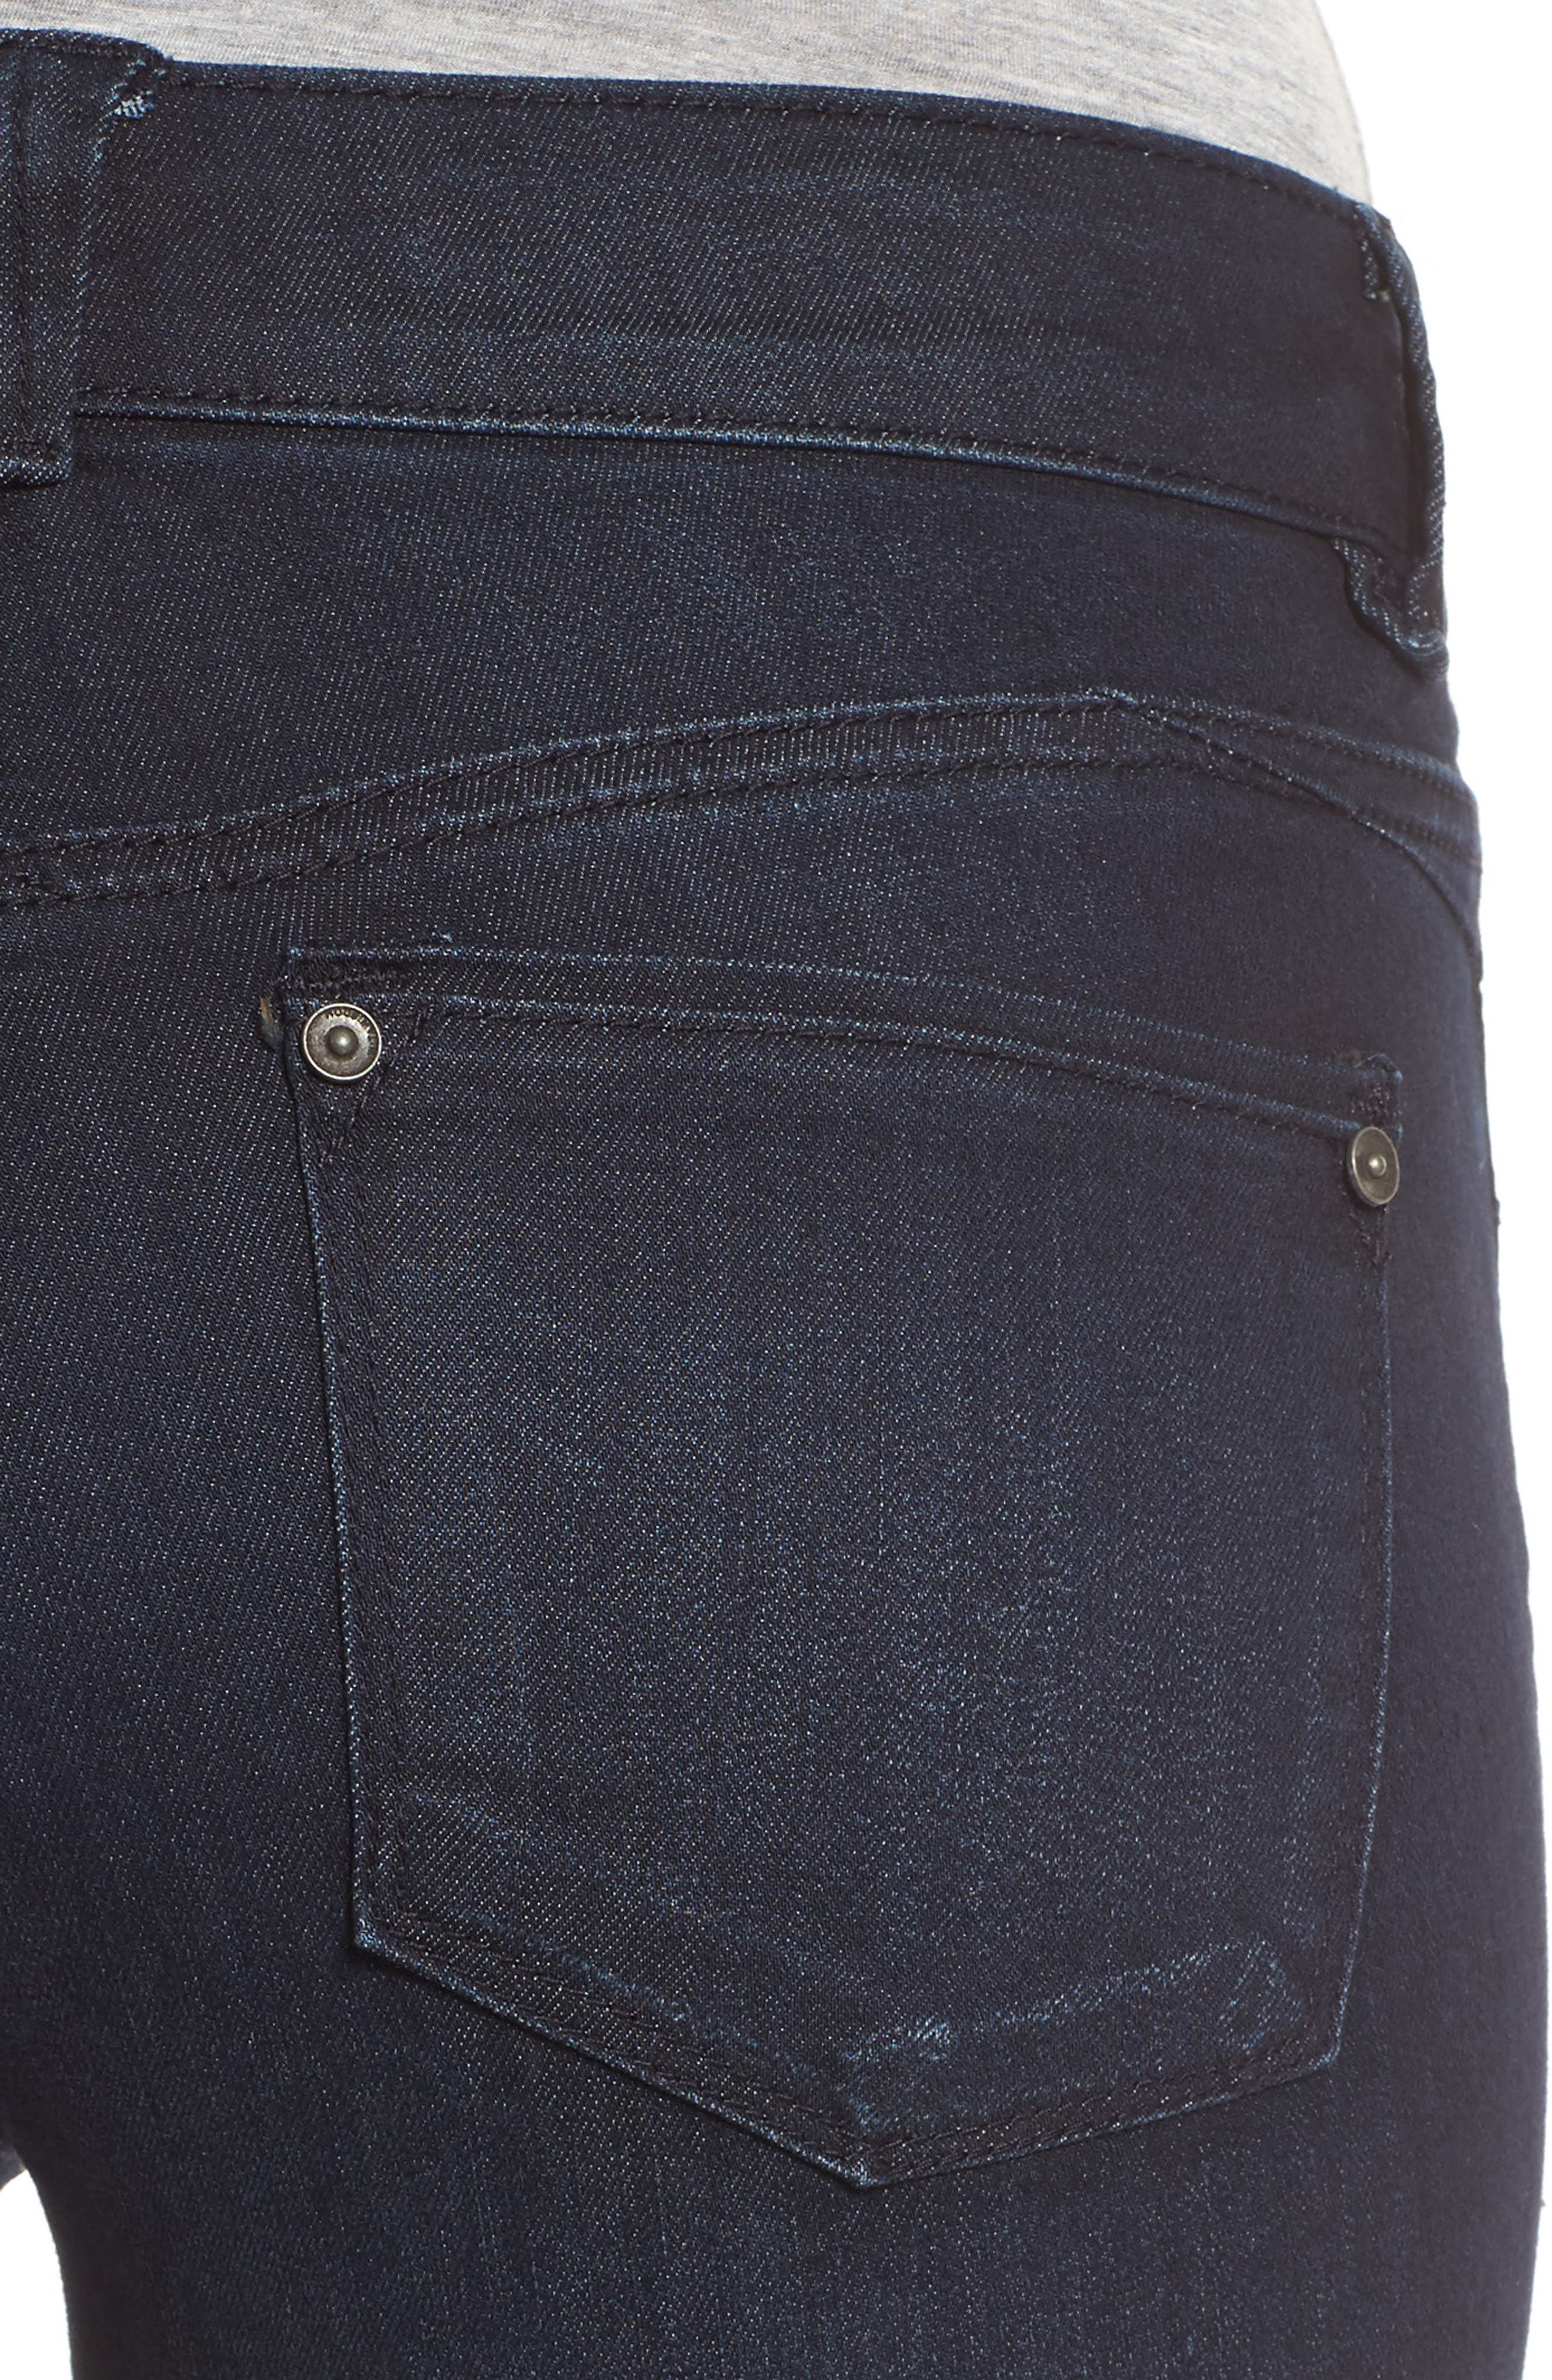 Ab-solution Ankle Zip Skinny Jeans,                             Alternate thumbnail 4, color,                             410